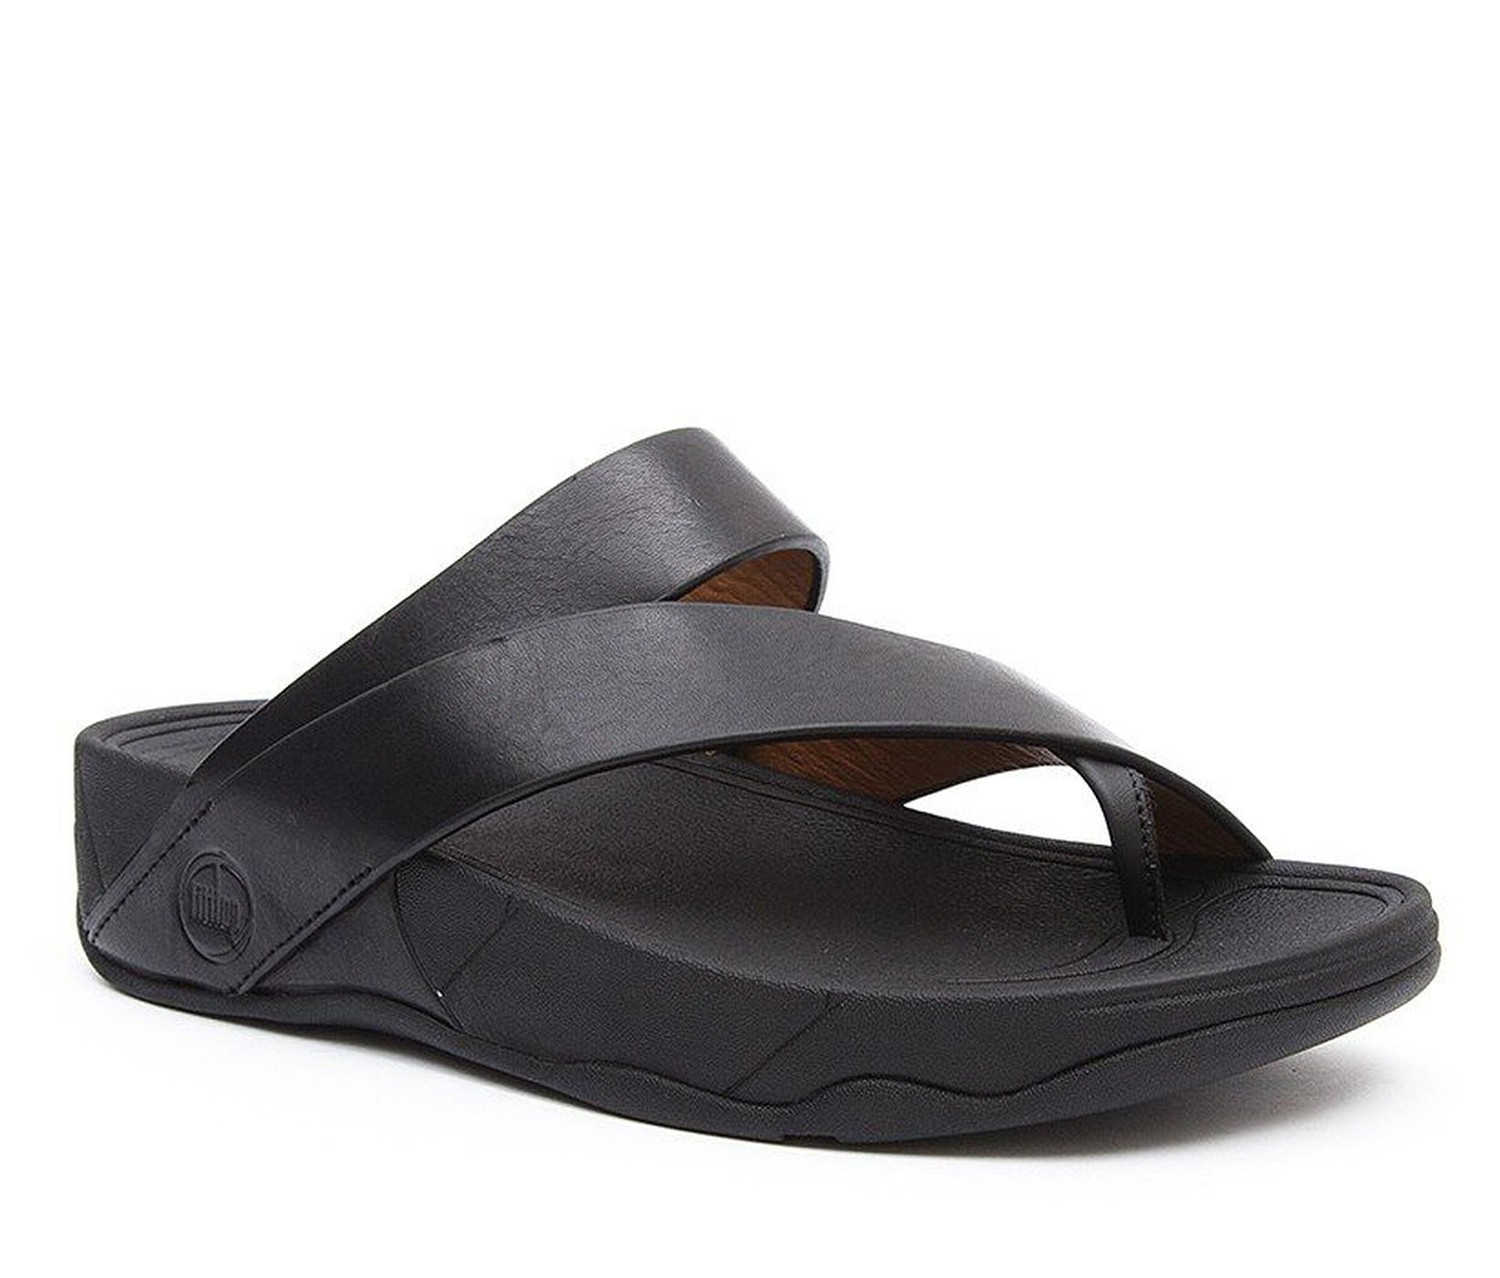 Fitflop Men S Sling M Leather Thong Sandal Black Brands